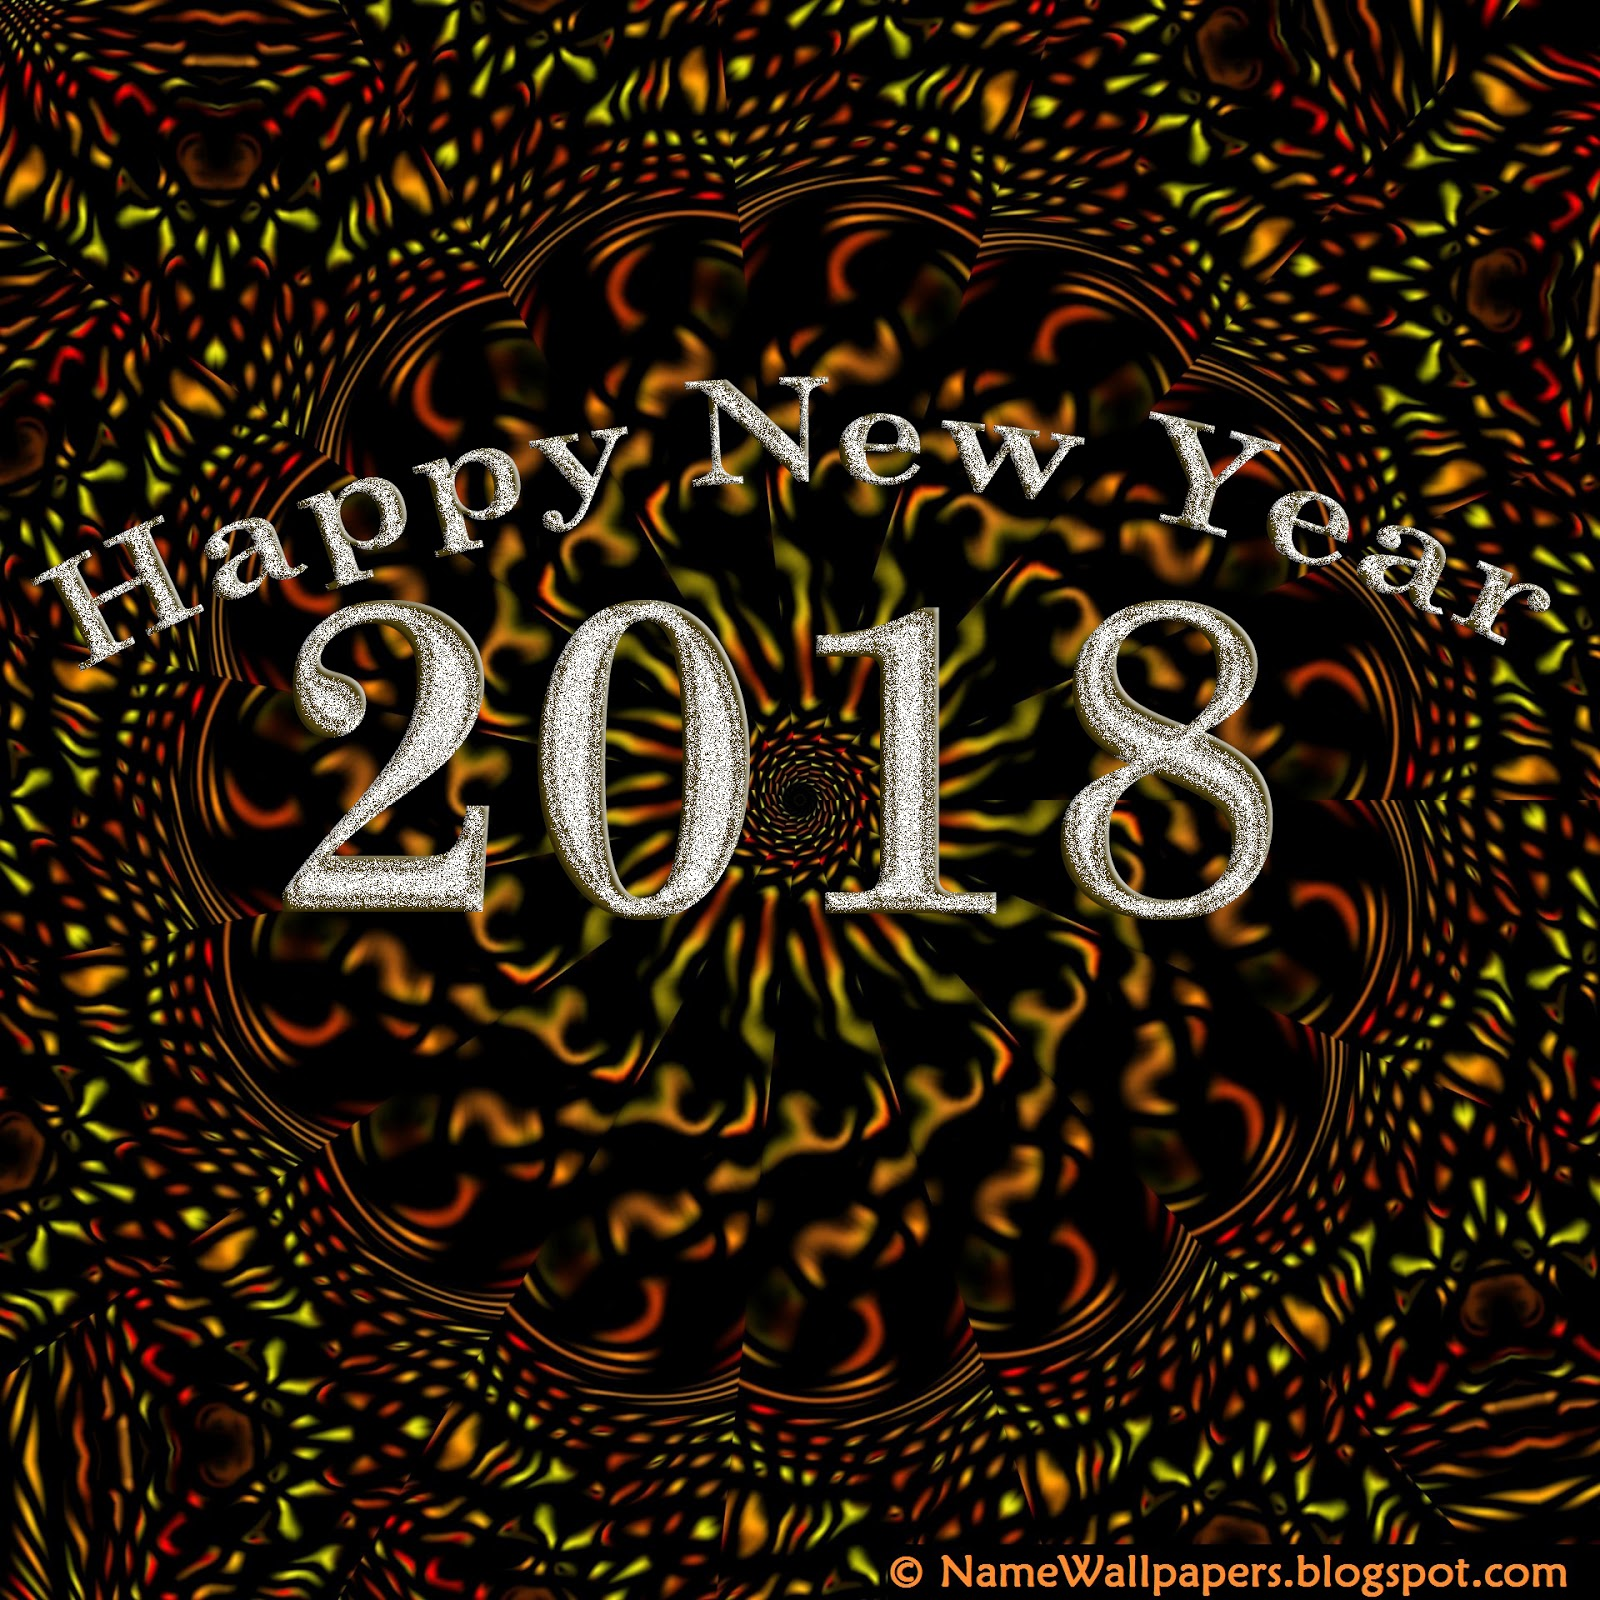 Happy New Year 2018 Wallpapers HD Images Pictures 2018 ~ Happy New Year 2018 Wallpapers